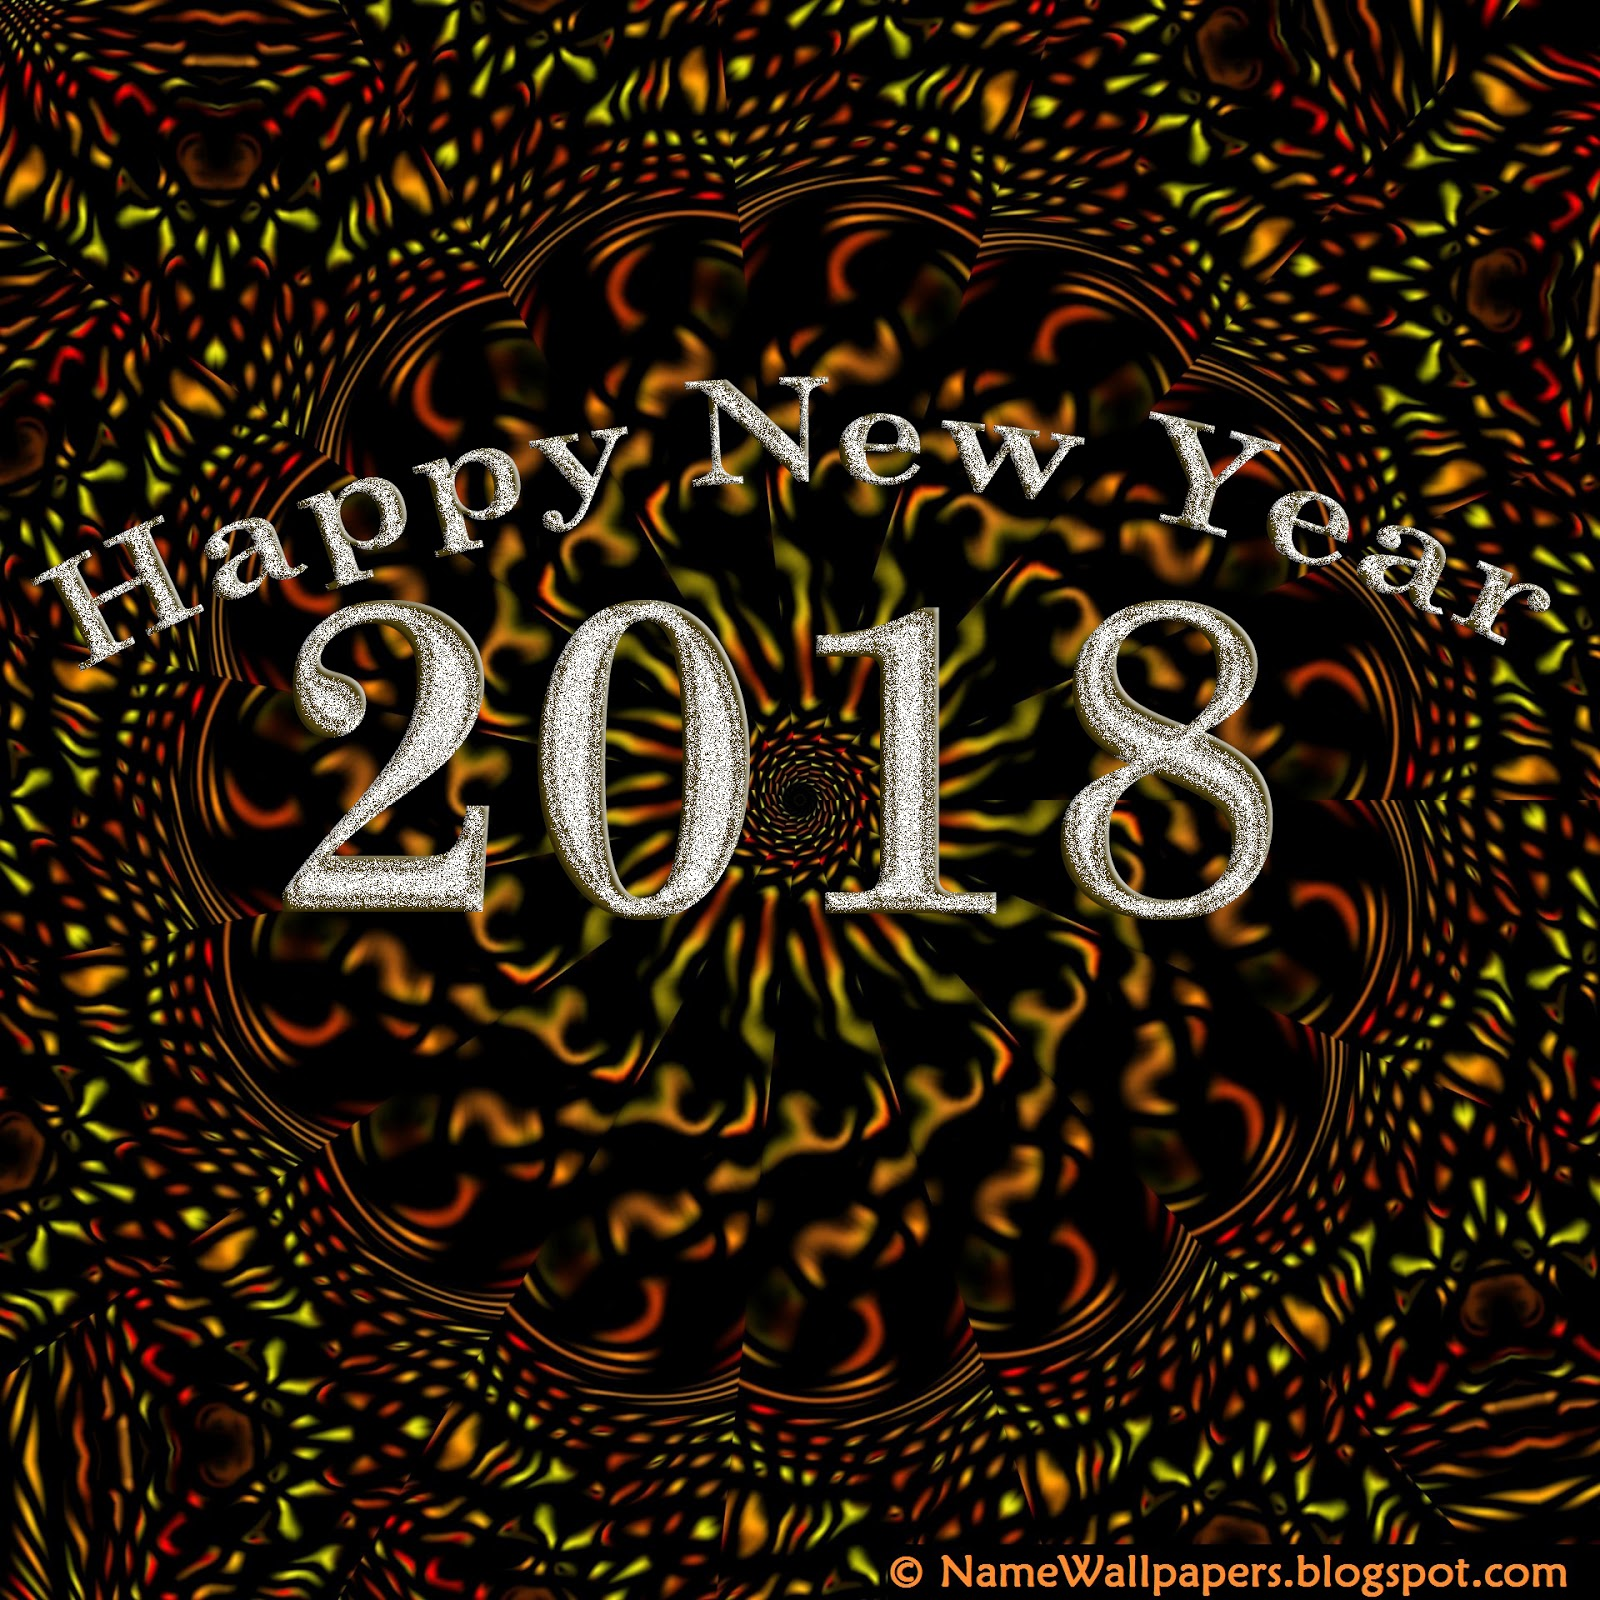 Happy New Year 2018 Wallpapers HD Images Pictures 2018 ~ Happy New Year 2018 Wallpapers